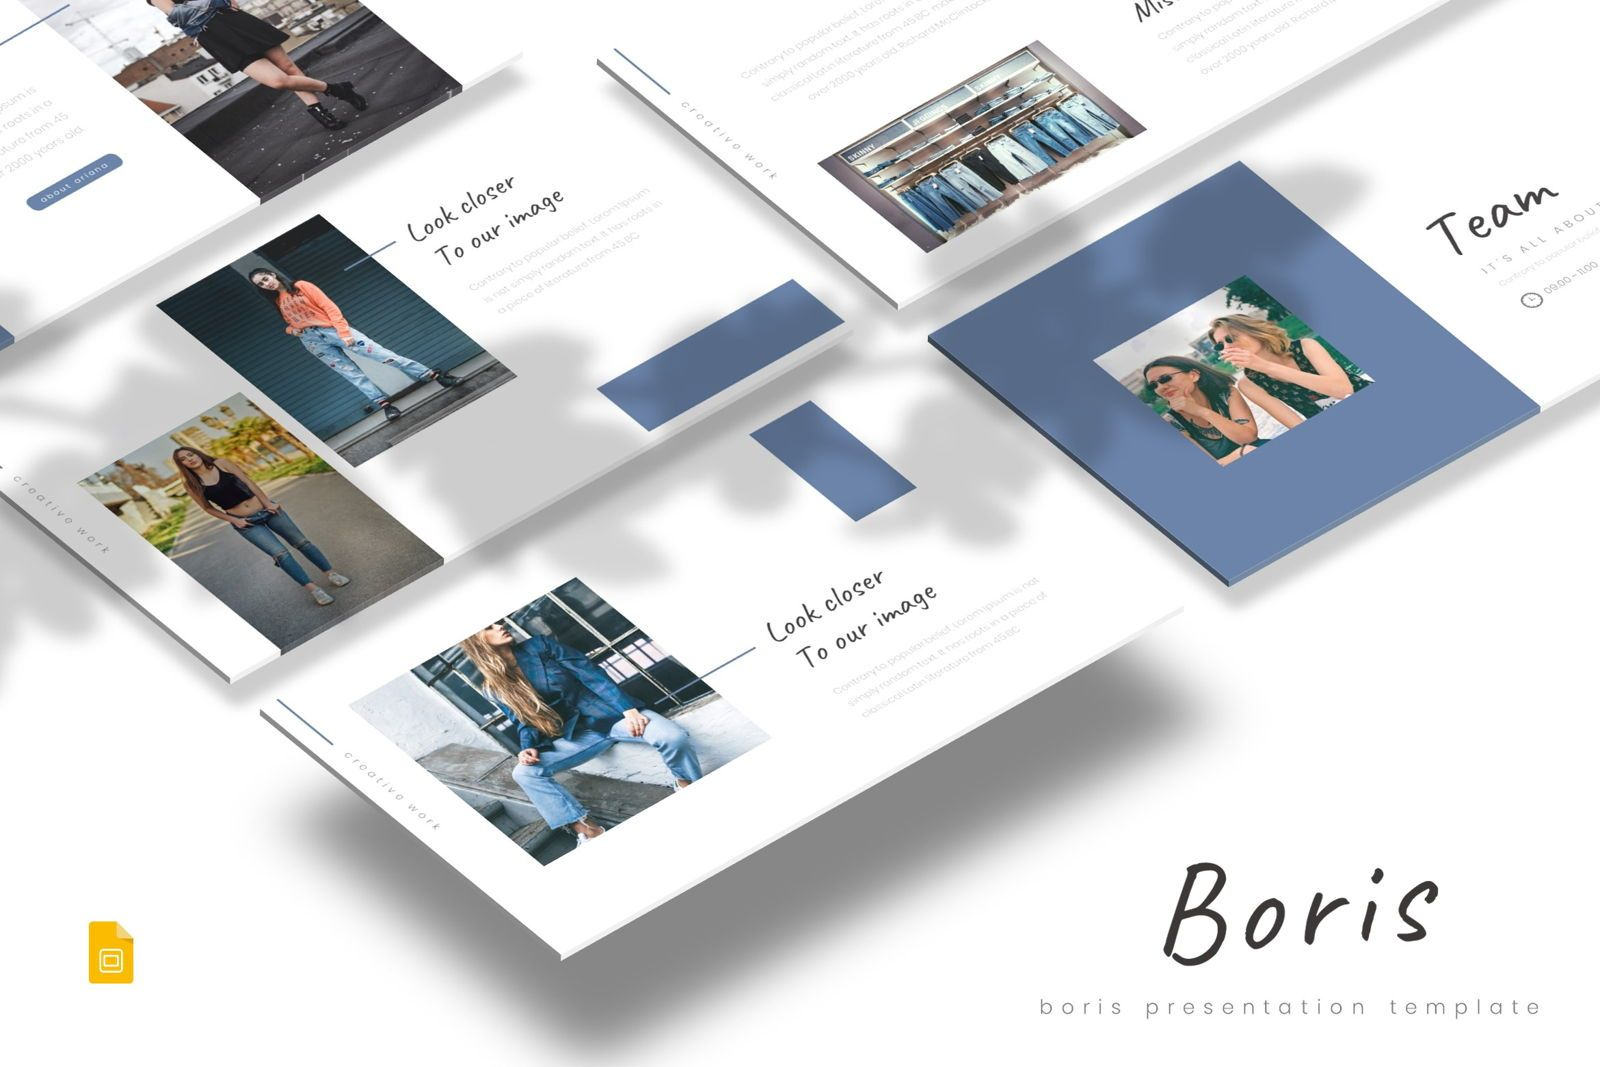 Boris - Google Slides Template, 07700, Presentation Templates — PoweredTemplate.com